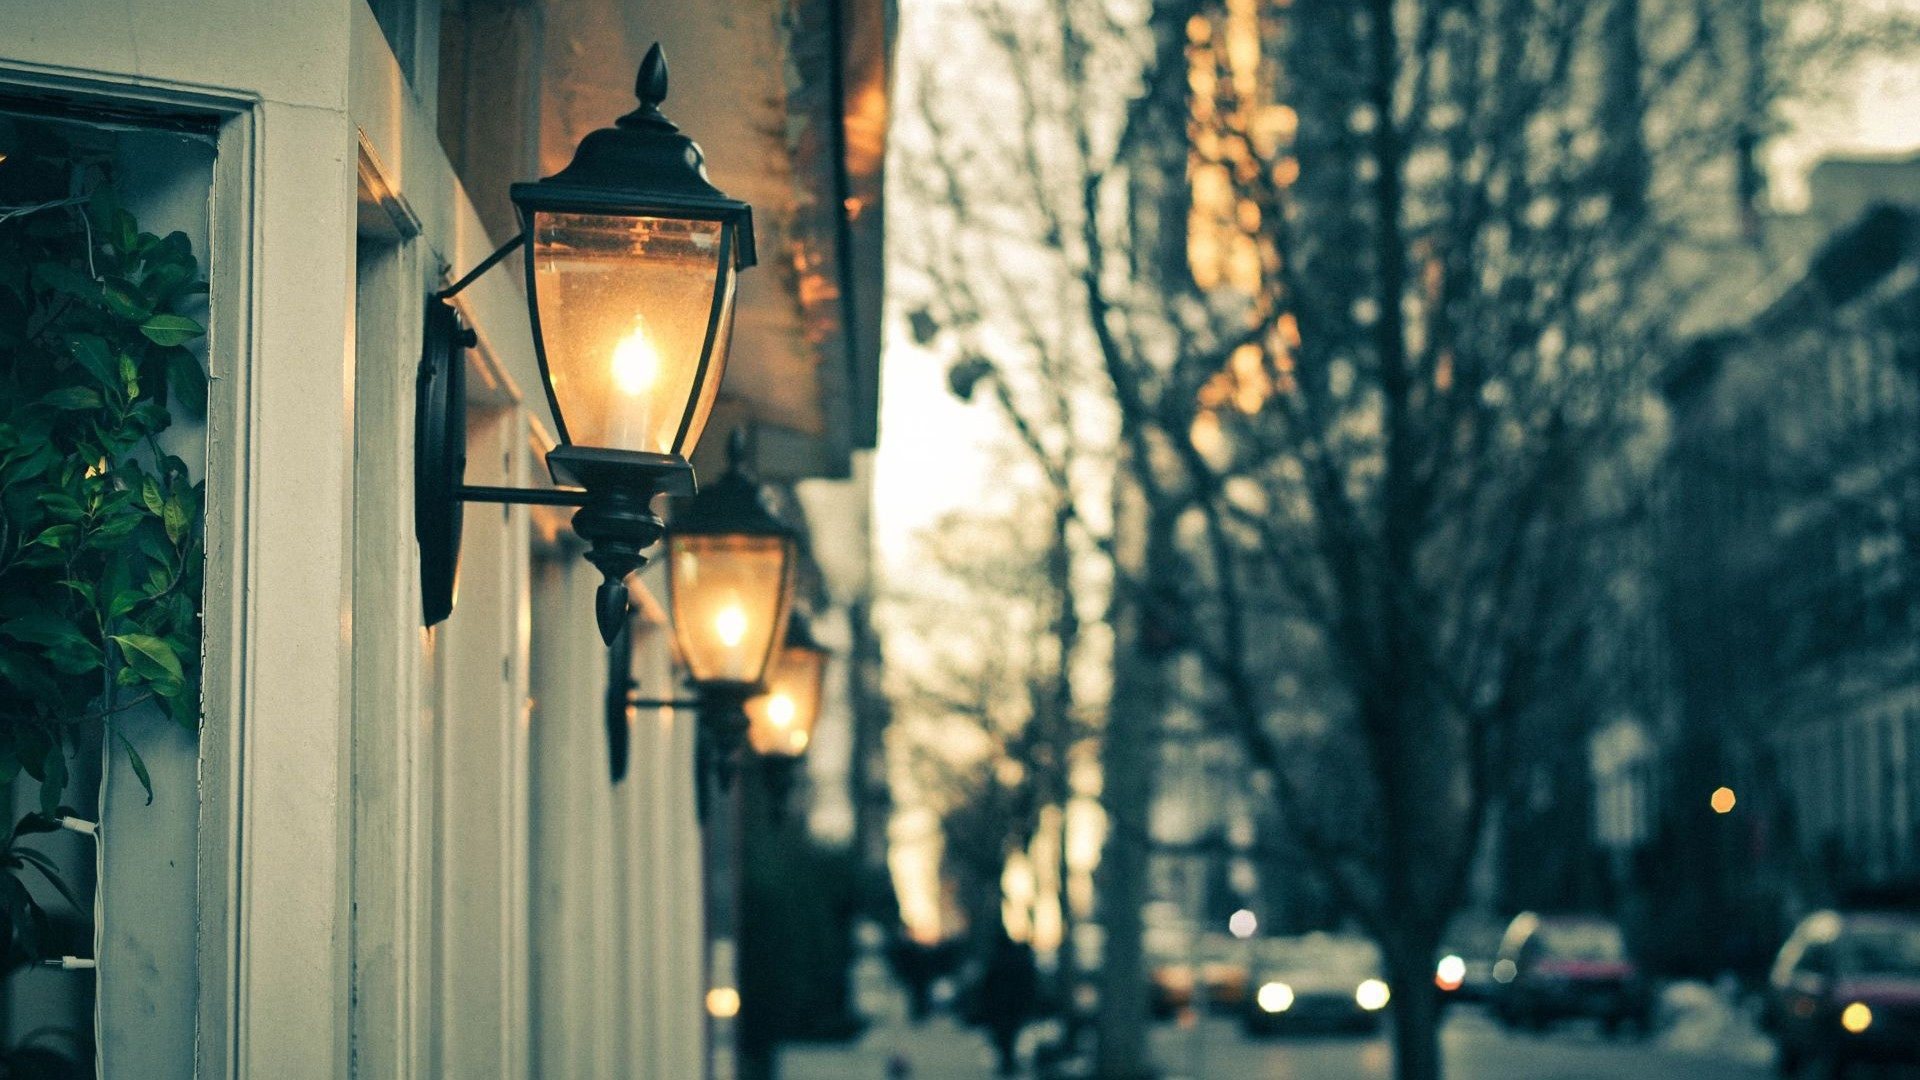 Three Street Lights